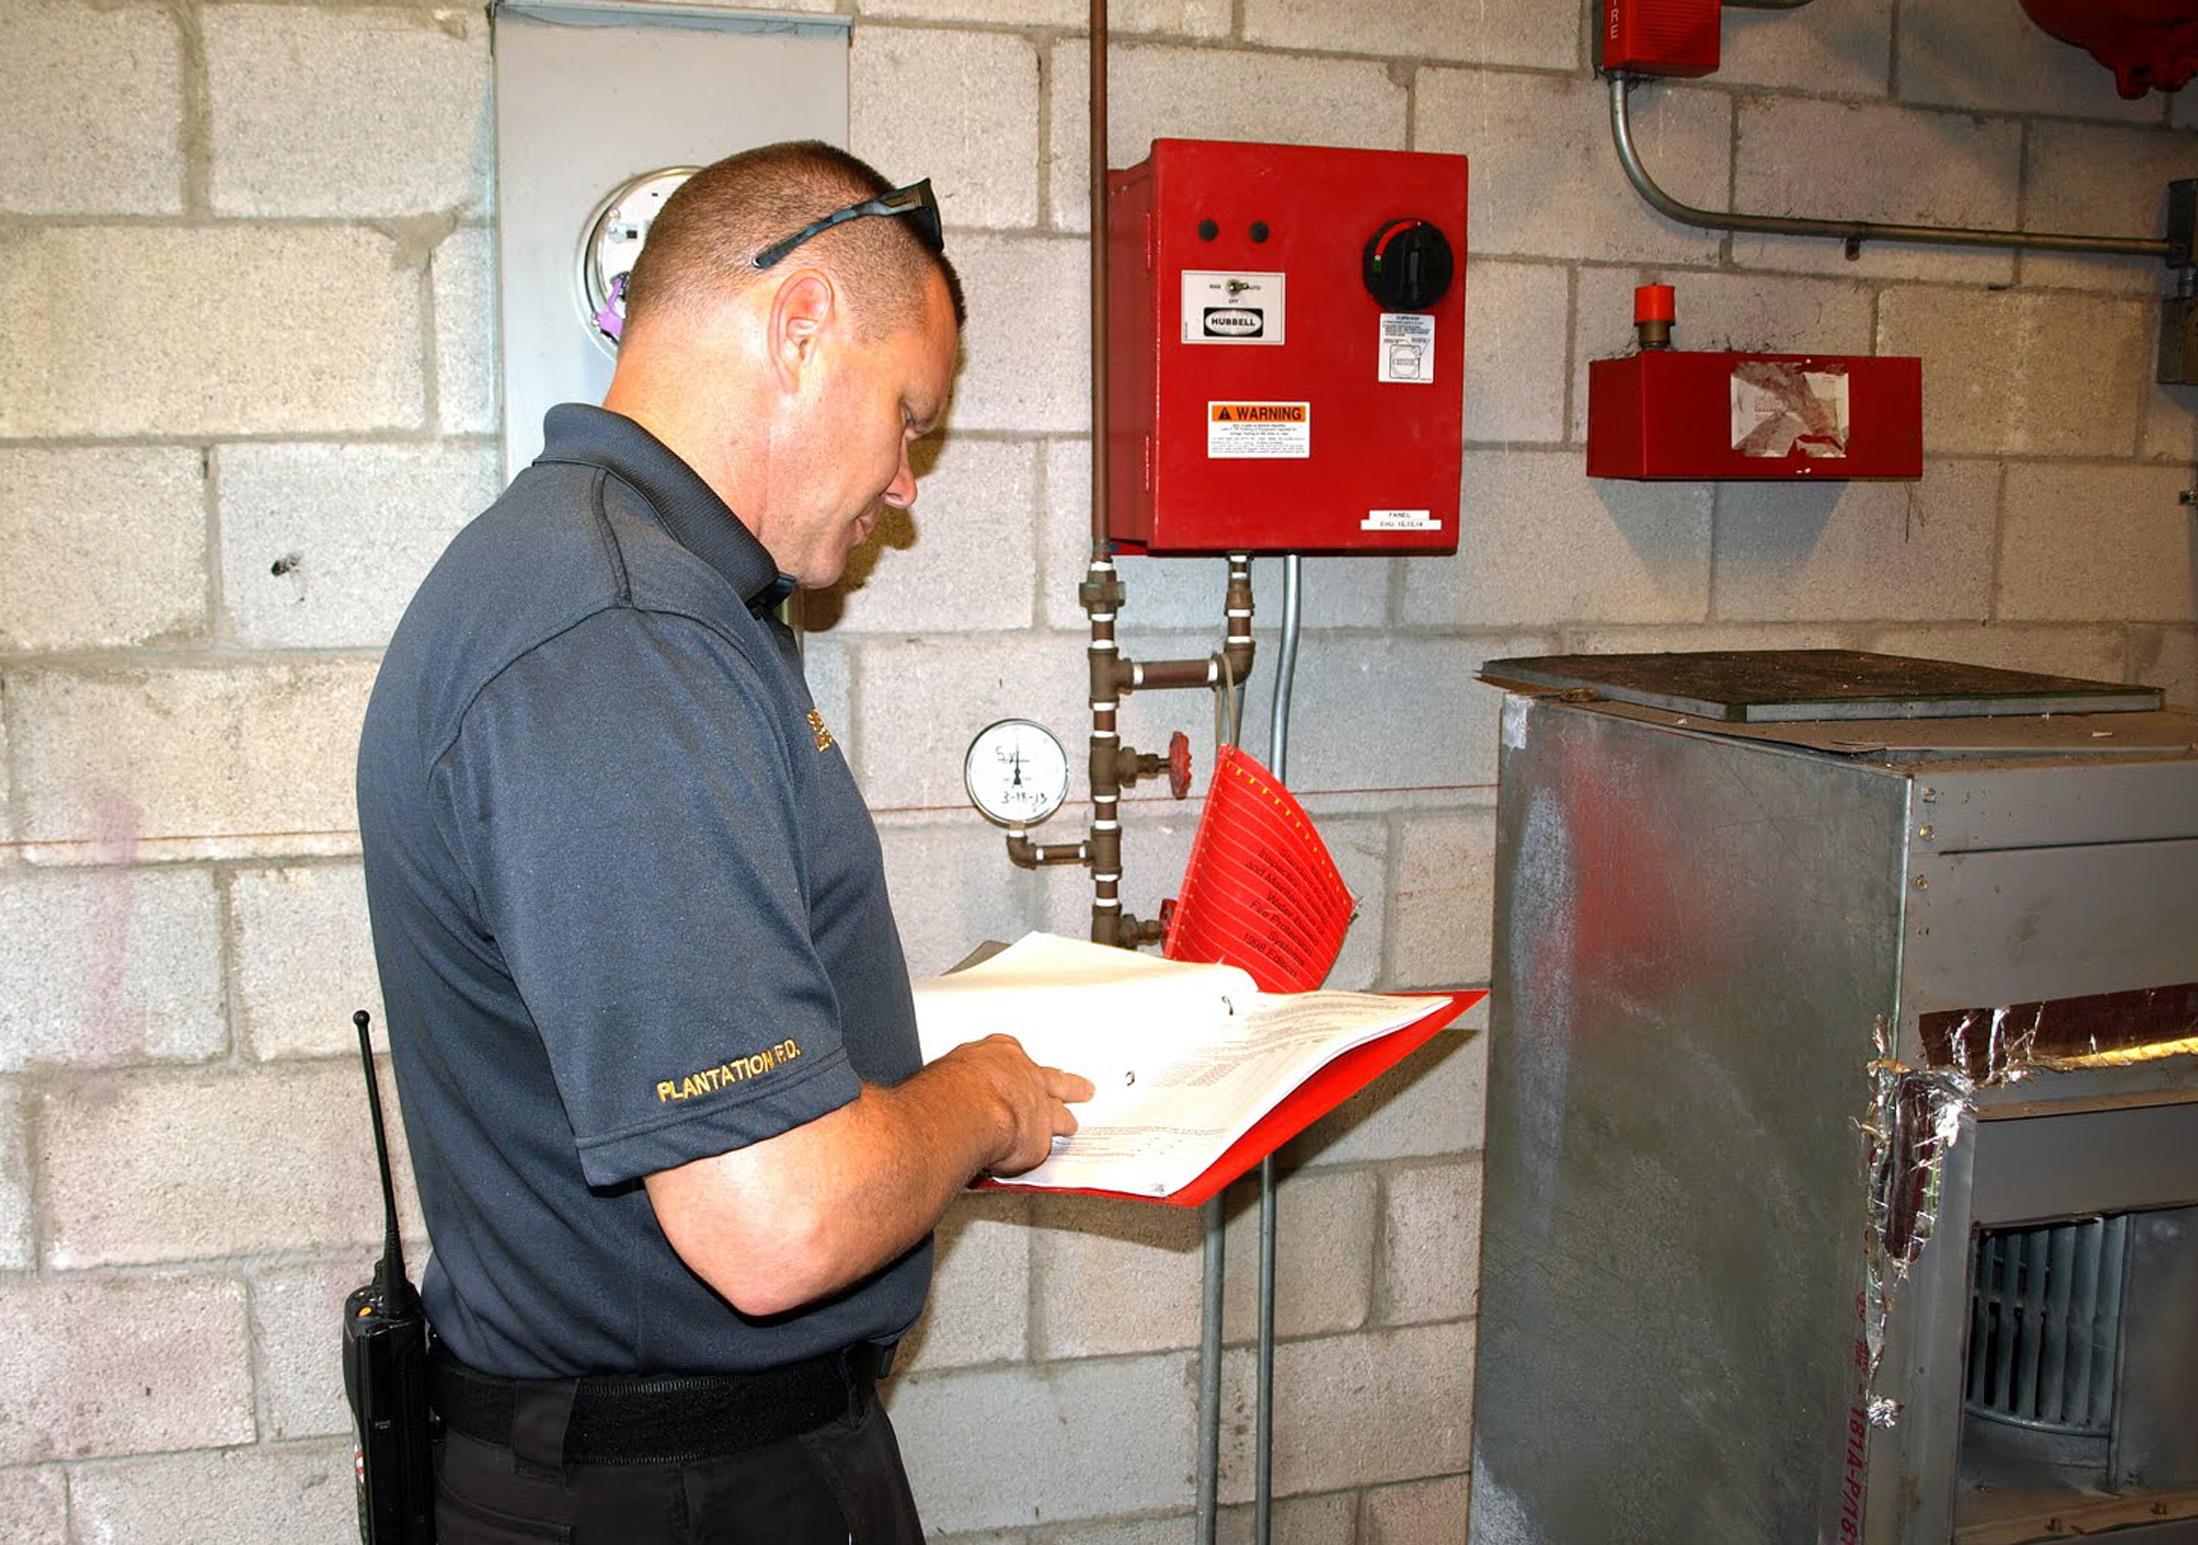 fire and safety inspections